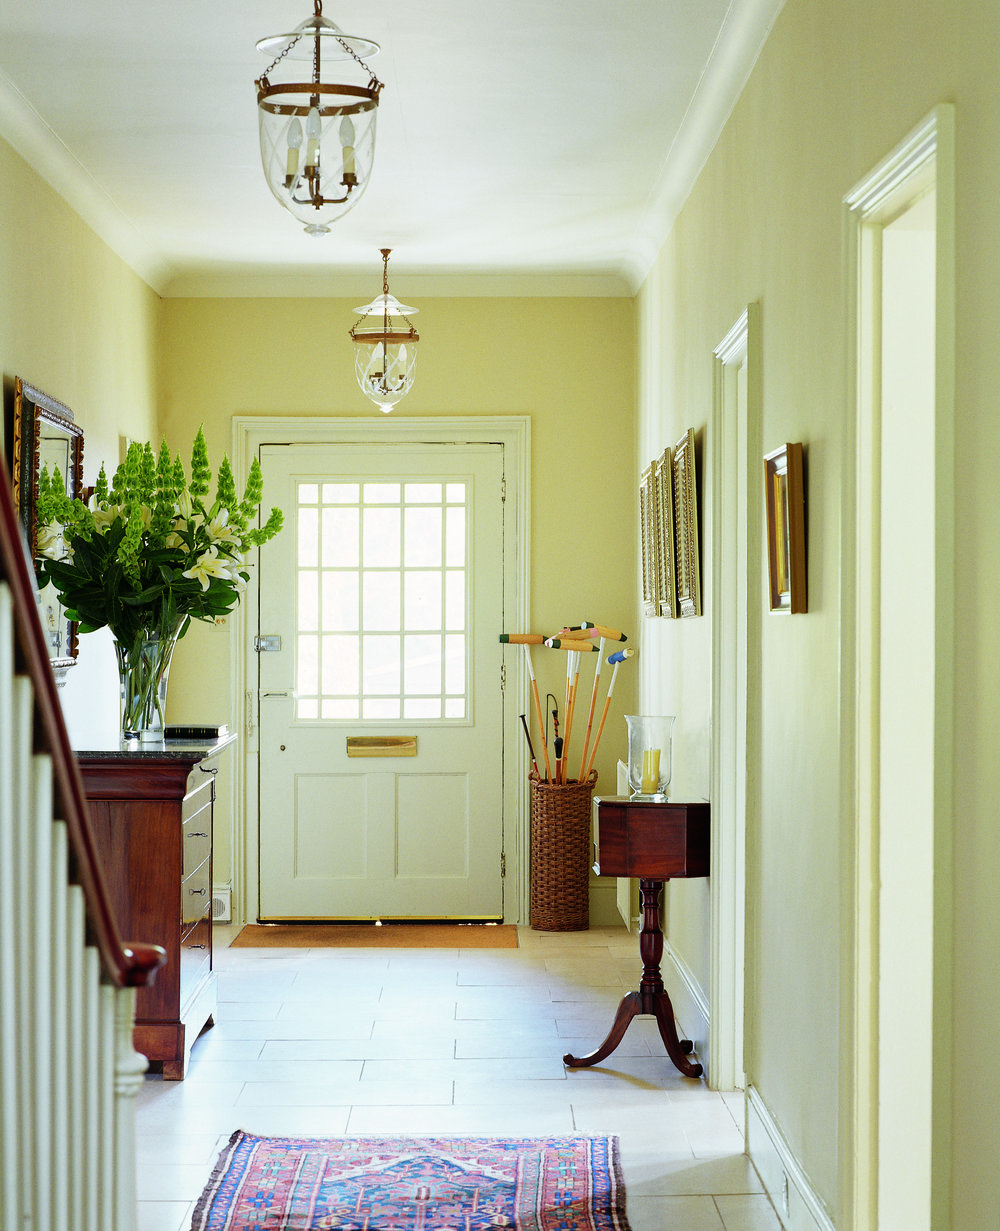 Image Credit: Farrow & Ball. Wall and Woodwork: String, No, 8, Estate Eggshell. Woodwork: Off-White, No, 3, Estate Eggshell